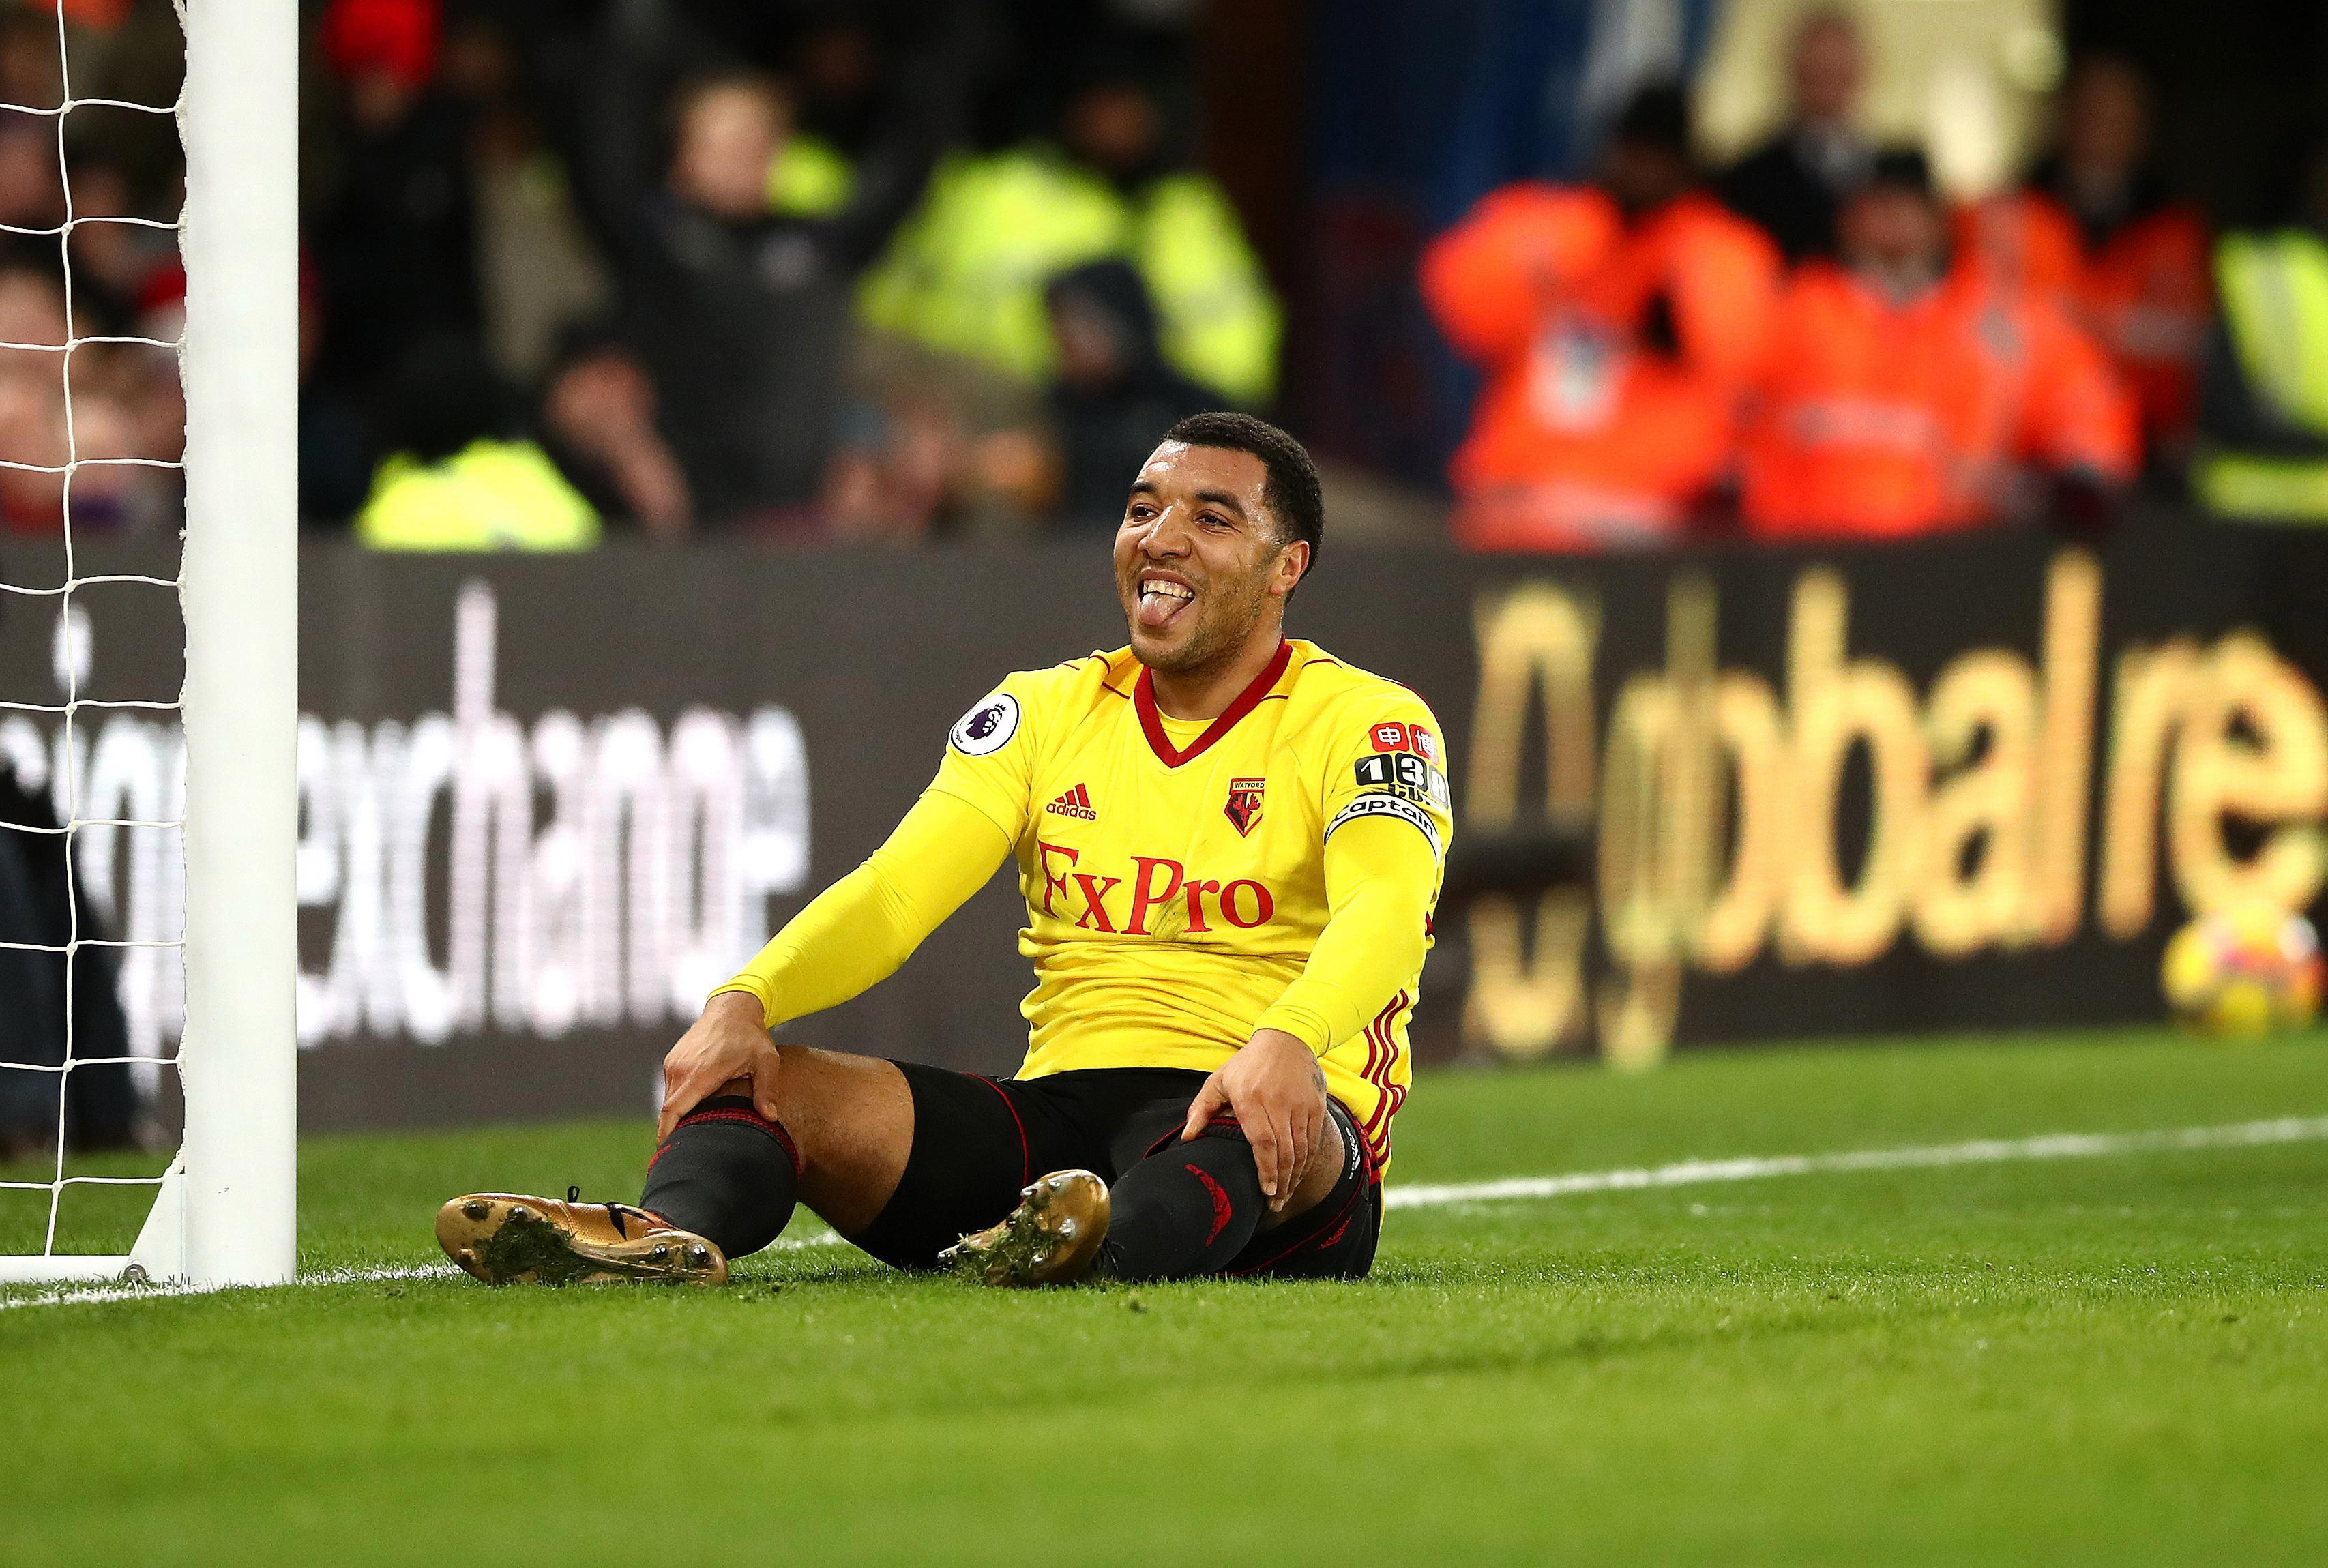 Watford captain Troy Deeney seeking psychological help to stop on-field indiscipline